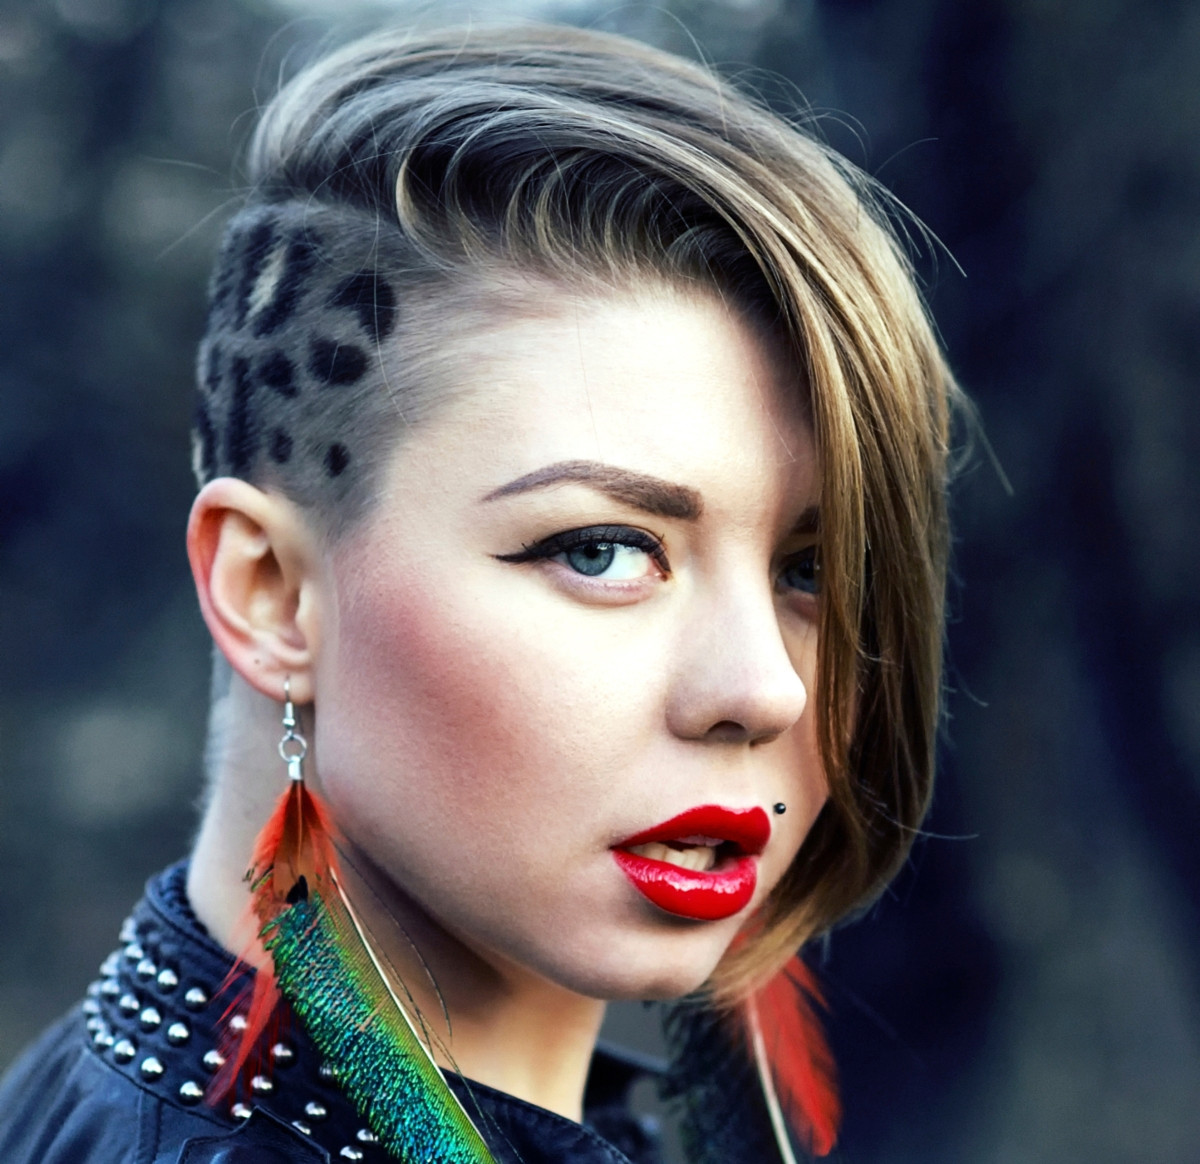 Best ideas about Punk Girls Haircuts . Save or Pin Girls Dress Your Tresses With These Punk Hairstyles Now.